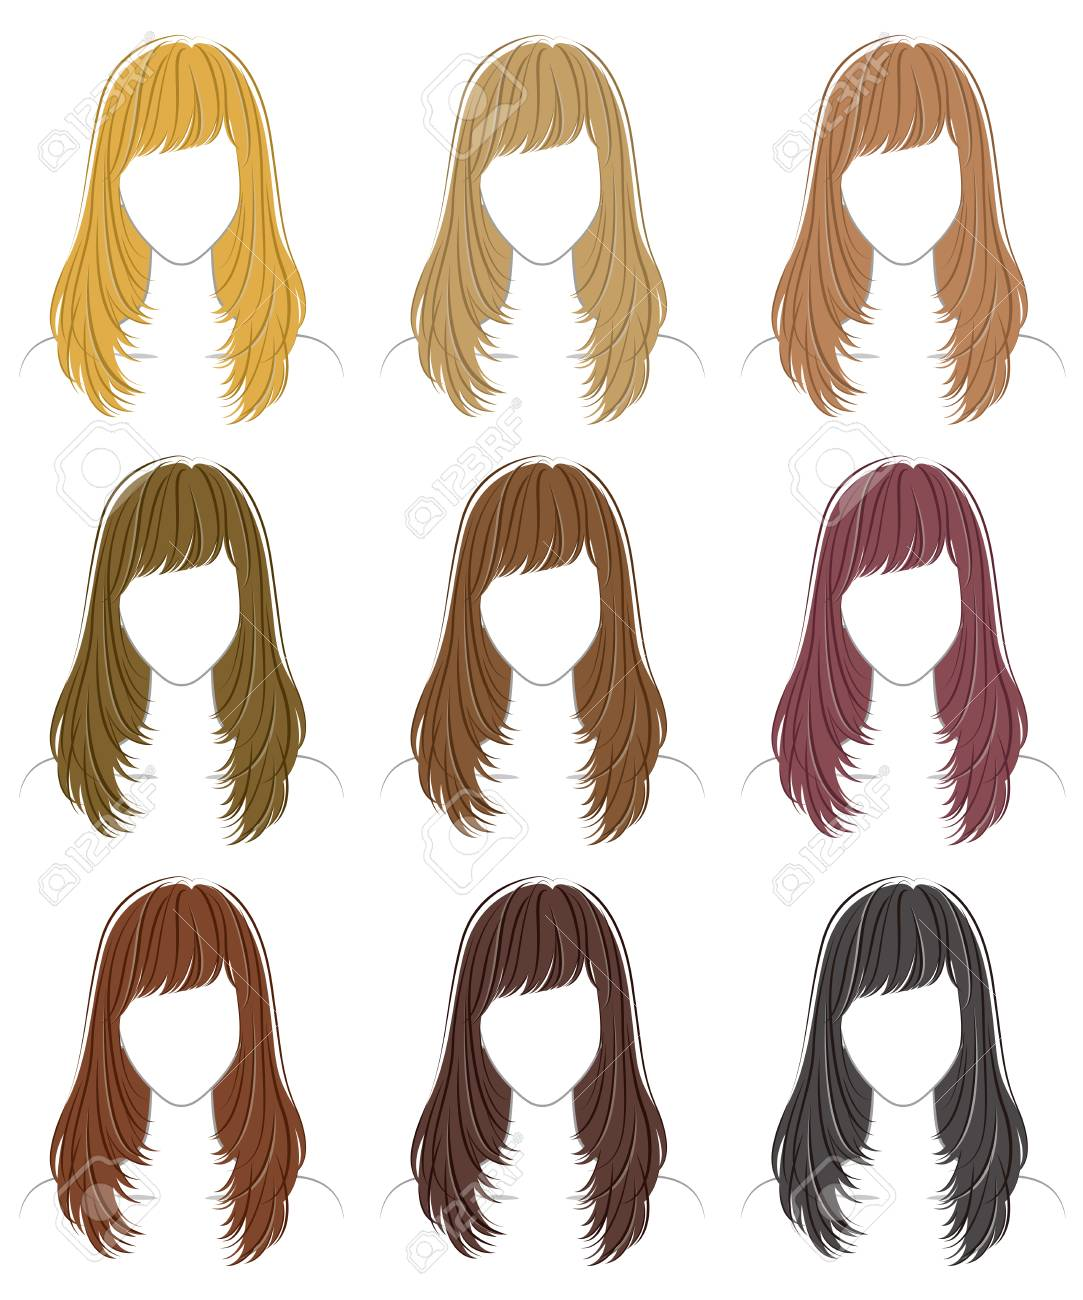 Wig Cliparts Coloring Free Download Clip Art.